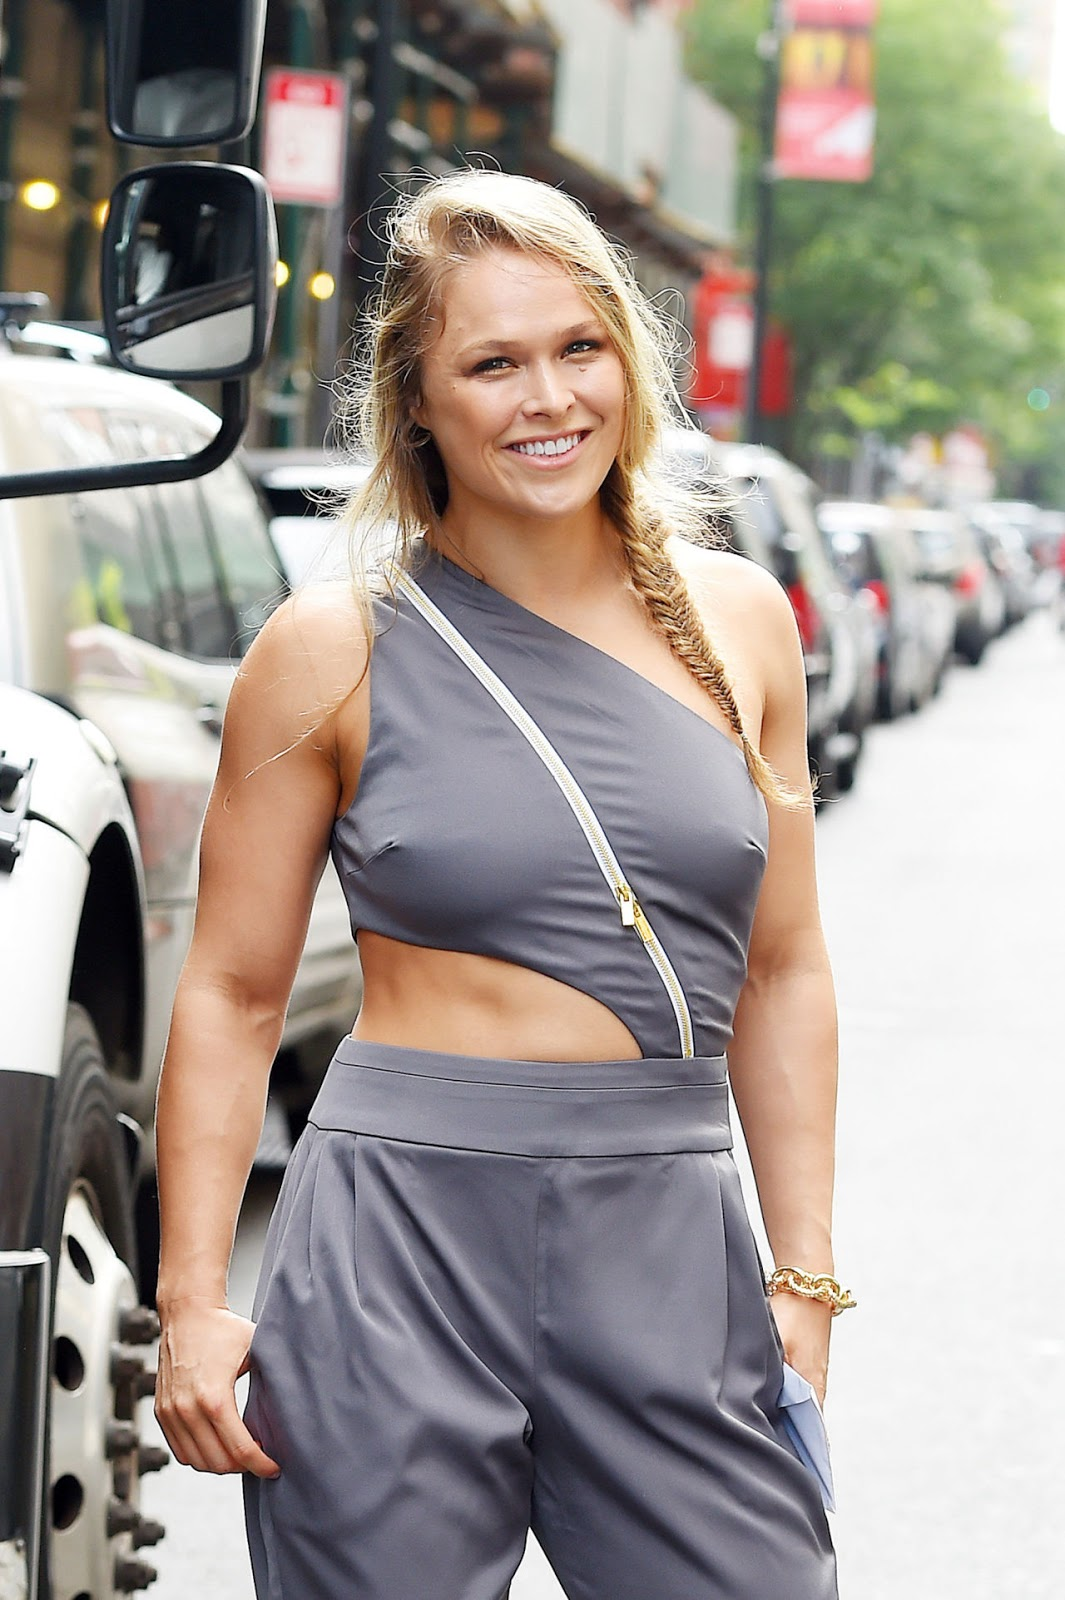 Hot Ronda Rousey nudes (19 photos), Topless, Cleavage, Instagram, butt 2020